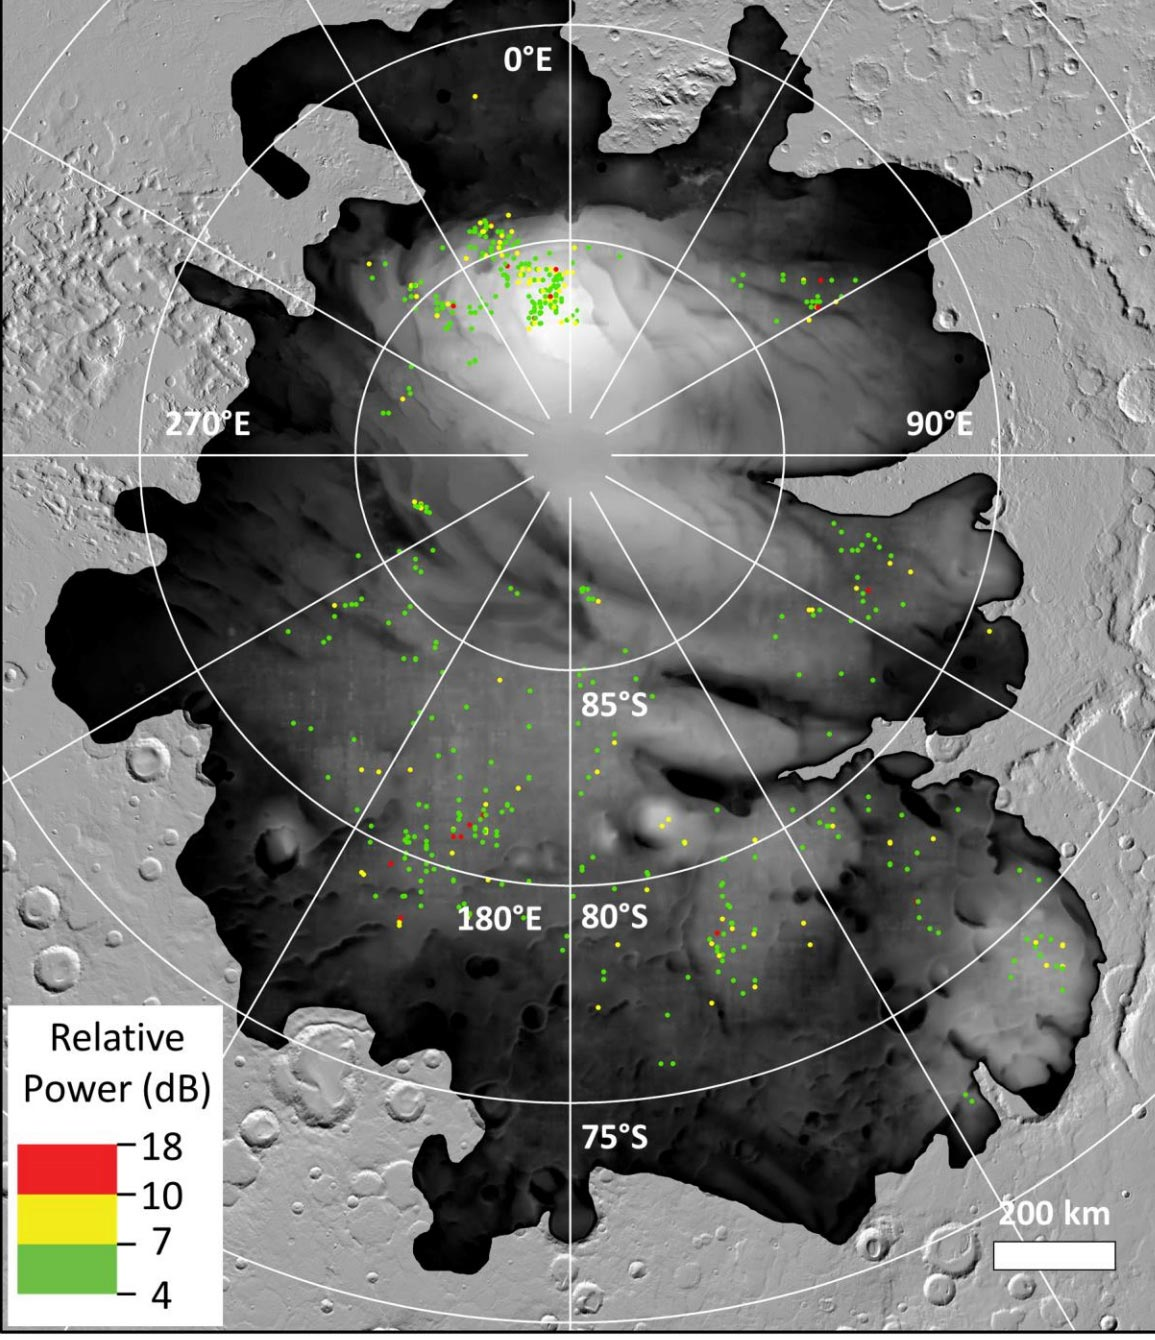 Doubt Cast on Premise of Subsurface Liquid Water Lakes on Mars – May Just Be Frozen Clay